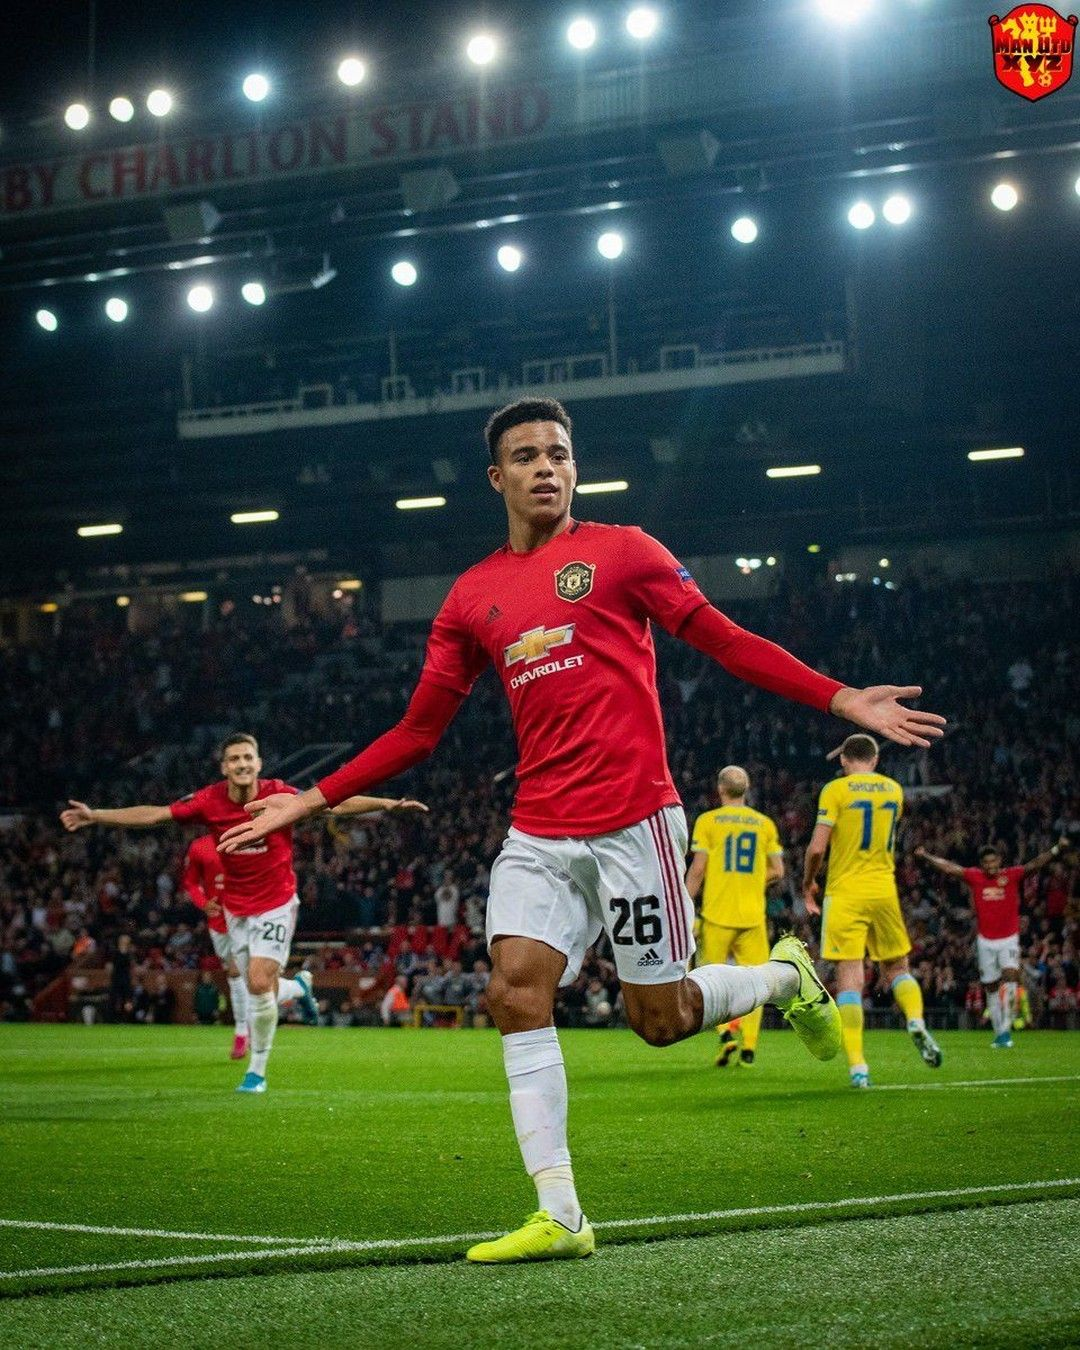 Mason Greenwood P90 In The Europa League This Season 8 82 Final Third Pressures 4 31 Penalty Ar In 2020 Manchester United Football Club Man United Manchester United